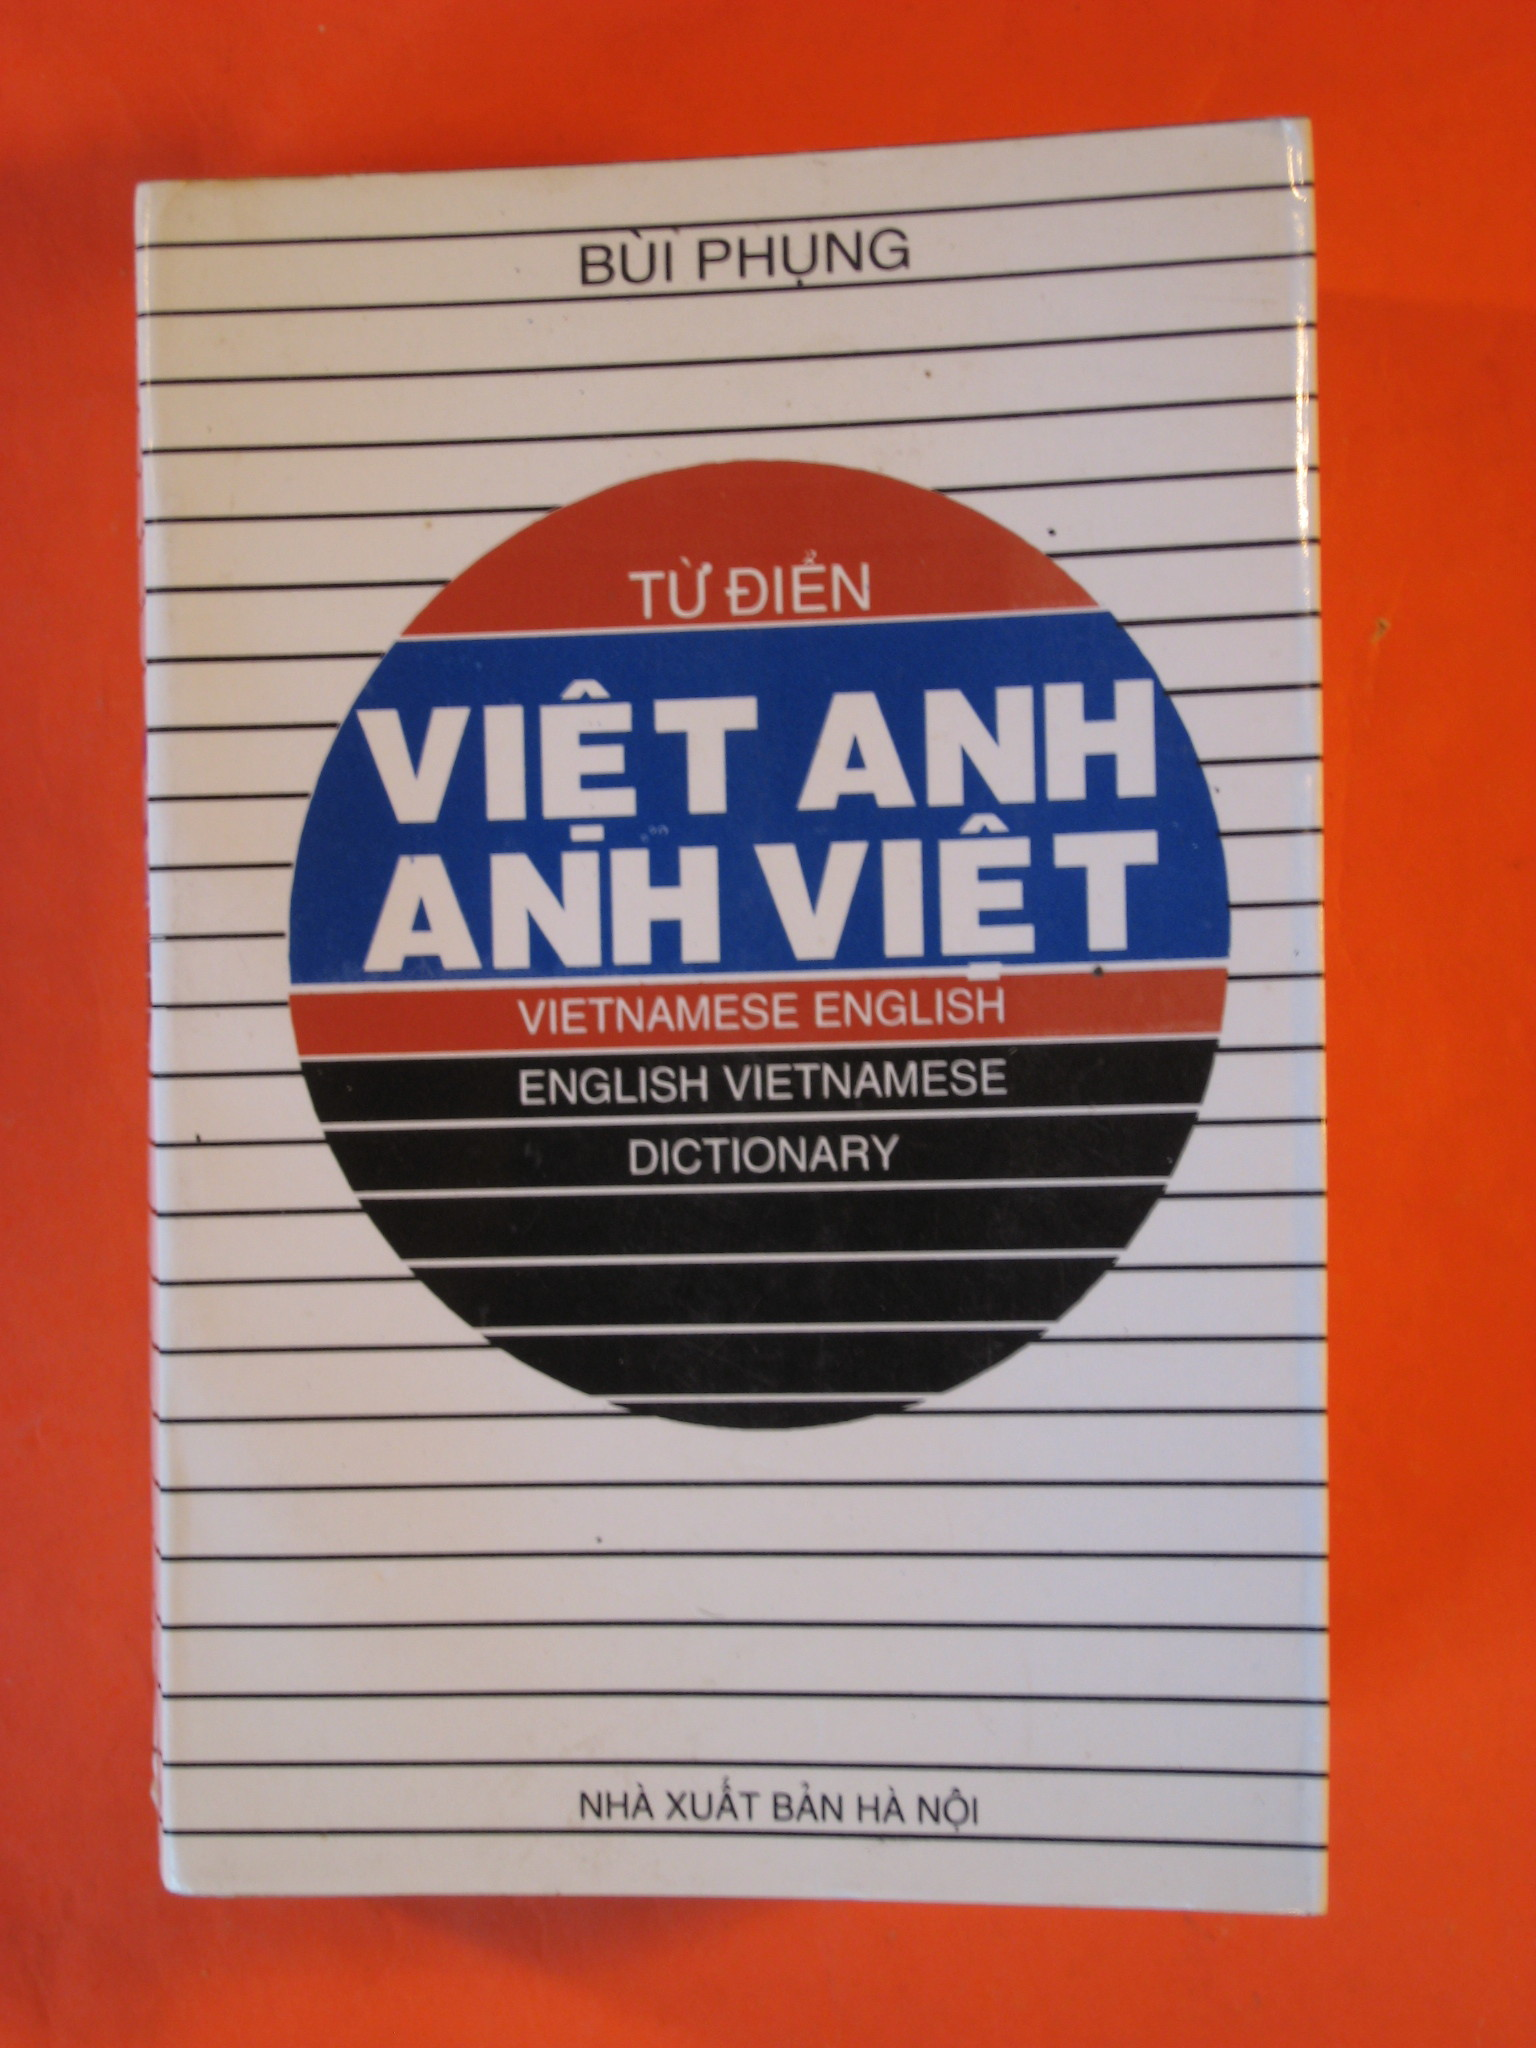 Image for Tu Dien; Anh Viet -- Viet Anh; English Vietnamese -- Vietnamese English Dictionary